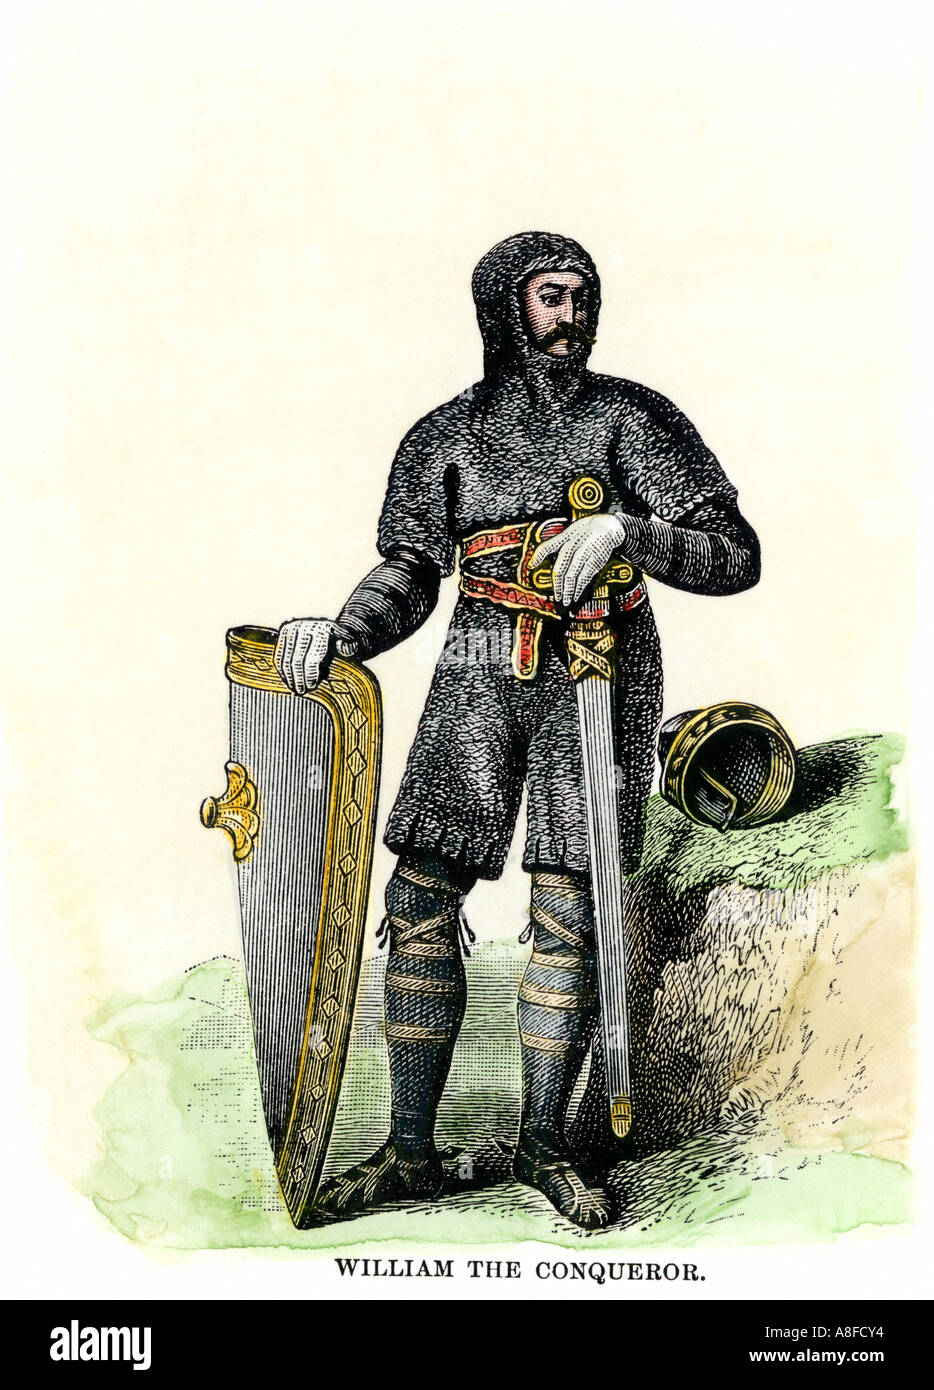 William the Conqueror in his suit of mail. Hand-colored woodcut - Stock Image